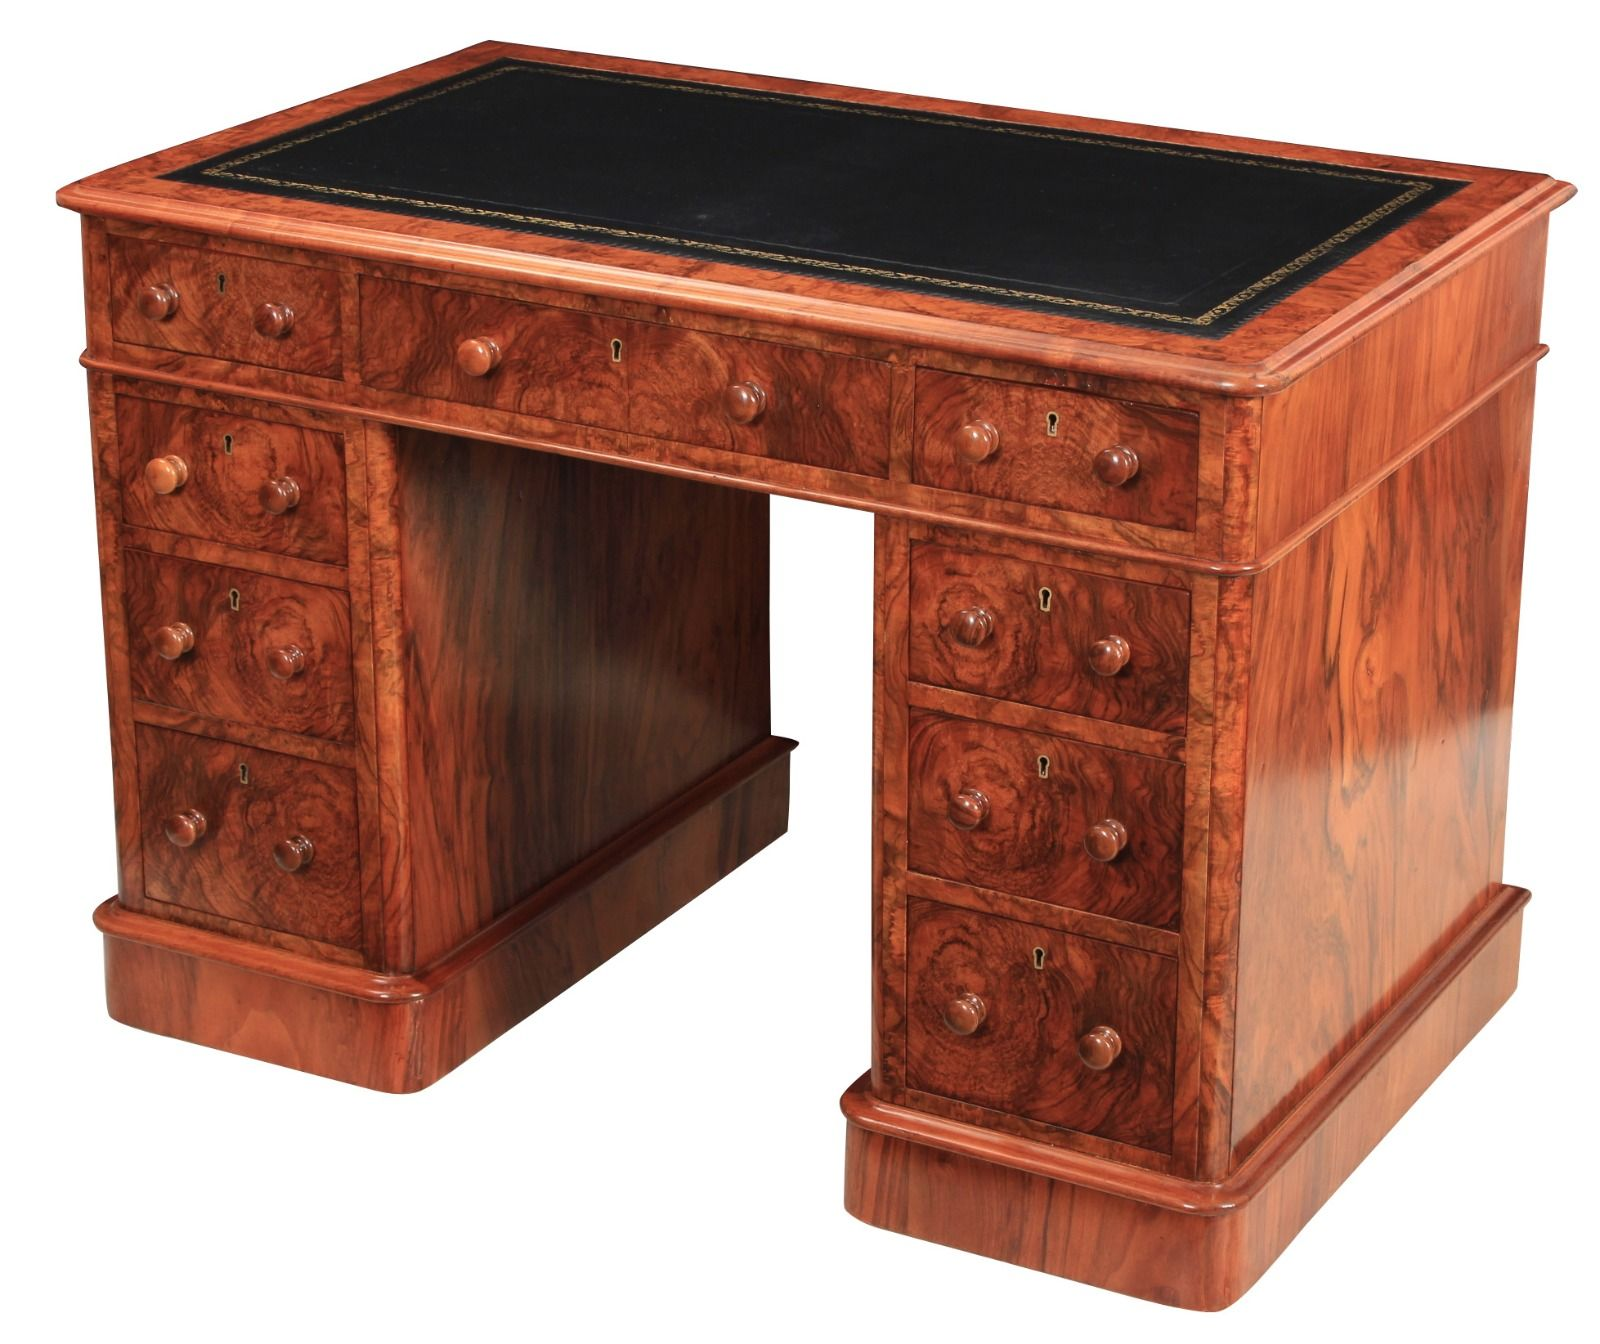 attractive desks desk mahogany white antique interesting drawers office computer for elegant with design furniture your decoration